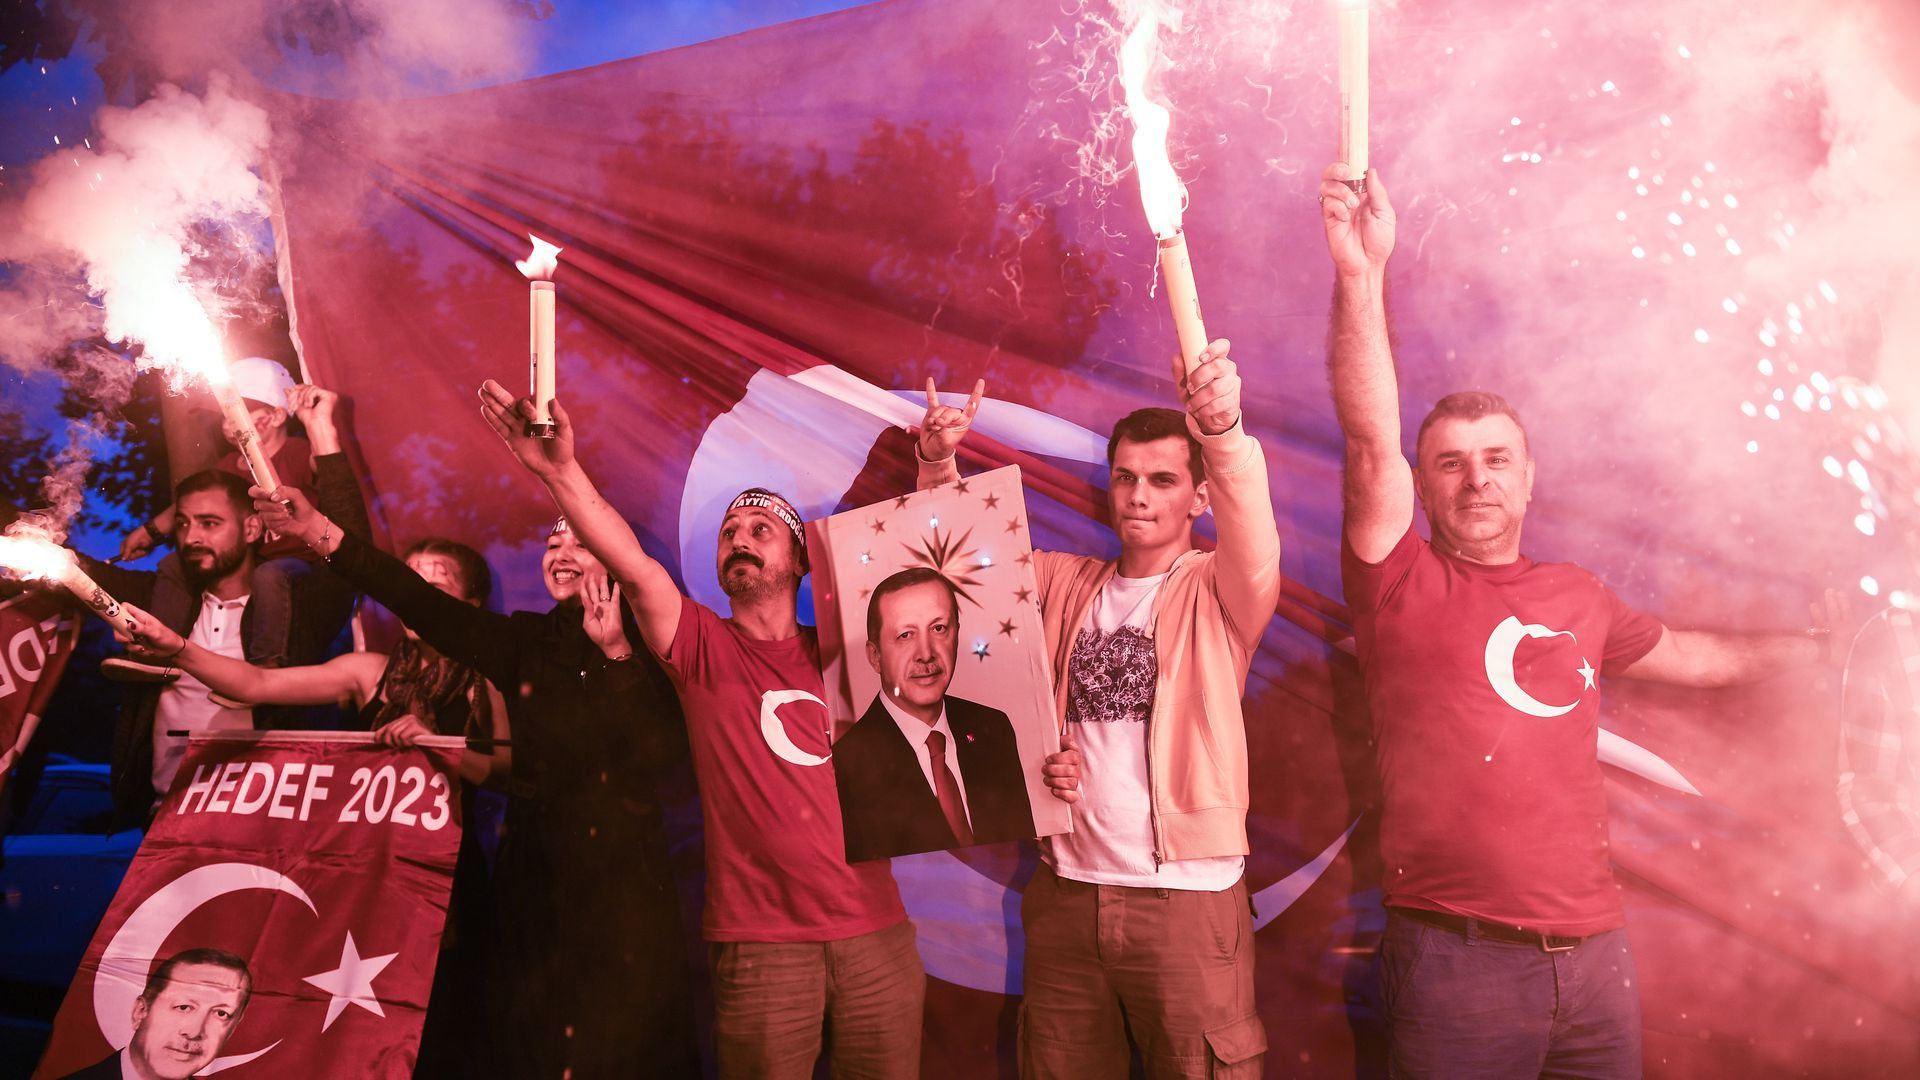 Erdogan's supporters celebrate outside the AK party headquarters on June 24, 2018 in Istanbul, Turkey.